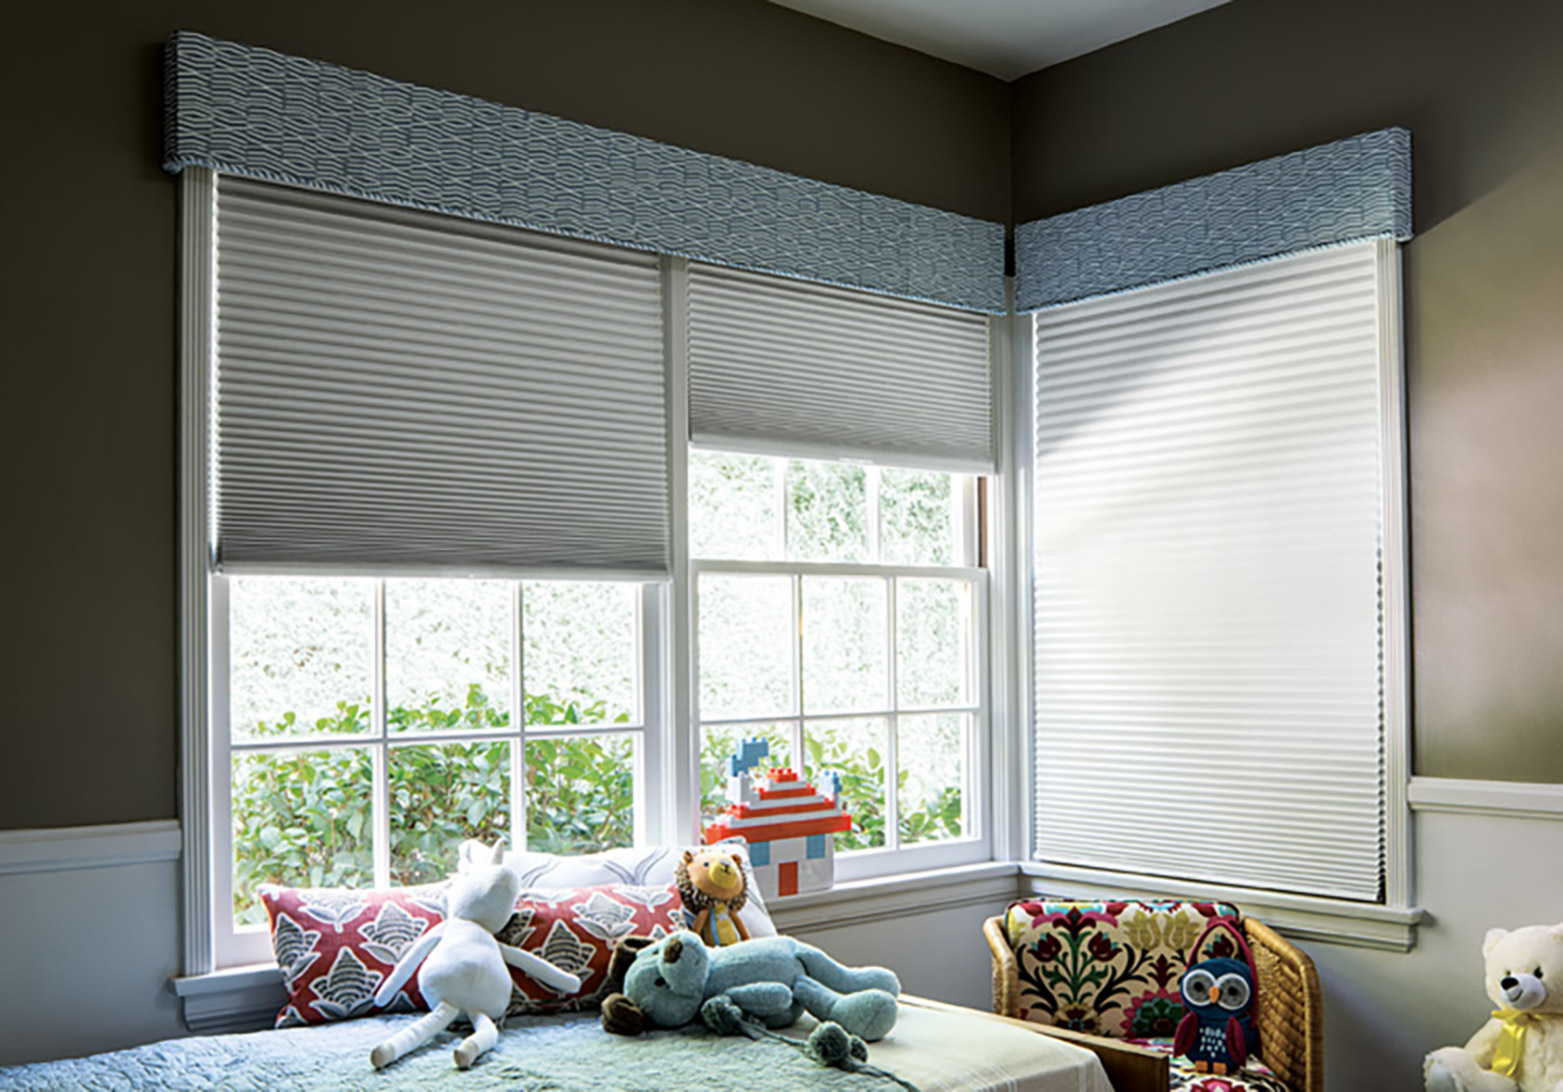 Blackout window treatments room darkening options from for Smith and noble shades